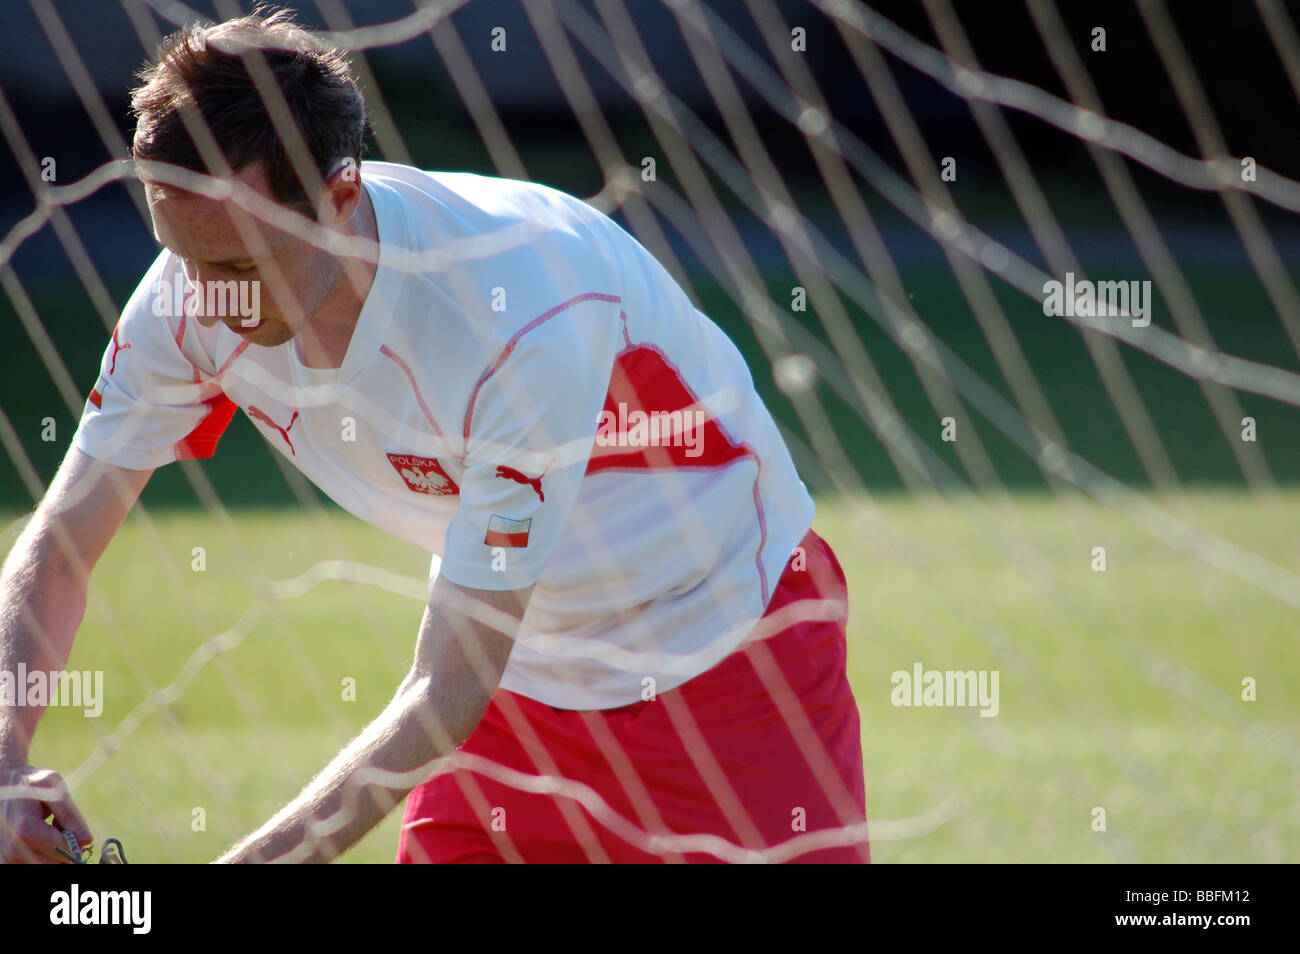 Footballer in Poland kit behind goal net in the summer. - Stock Image